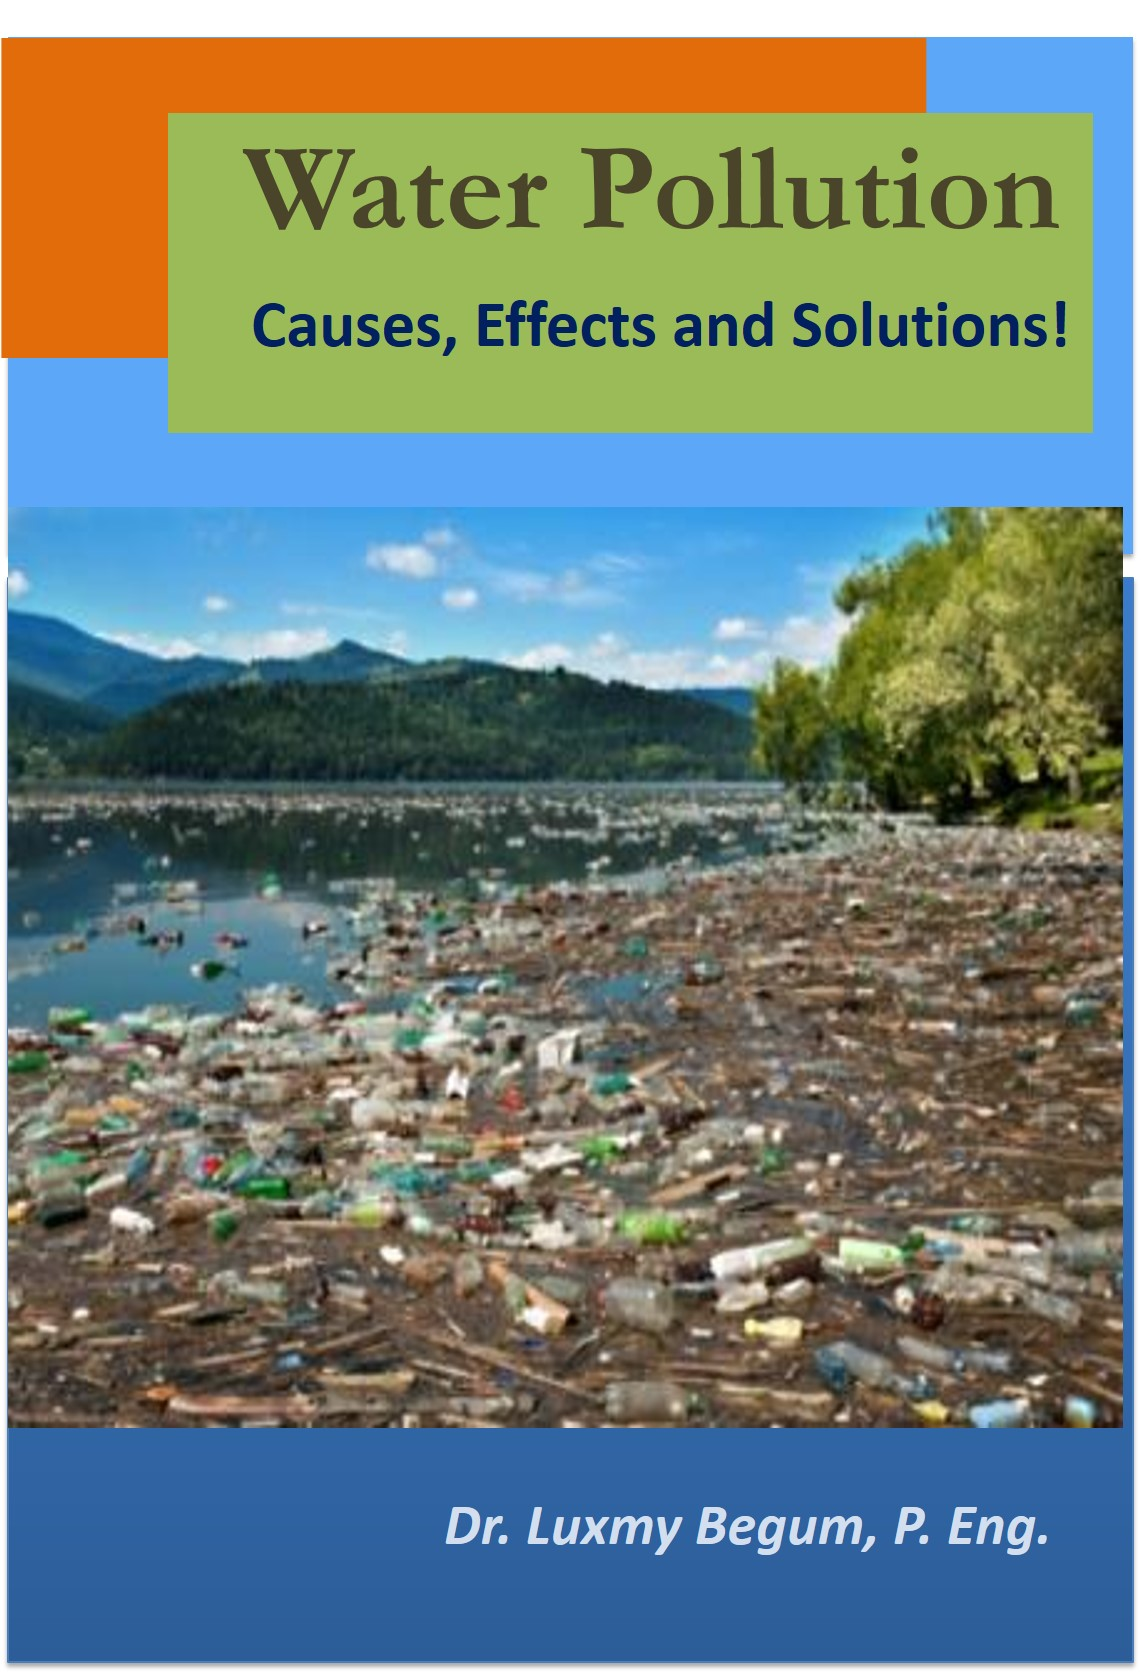 solutions to environmental pollution essay Environmental pollution is one of the most common essay topics essay on pollution can be quite a challenging academic assignment for some students  solutions to .